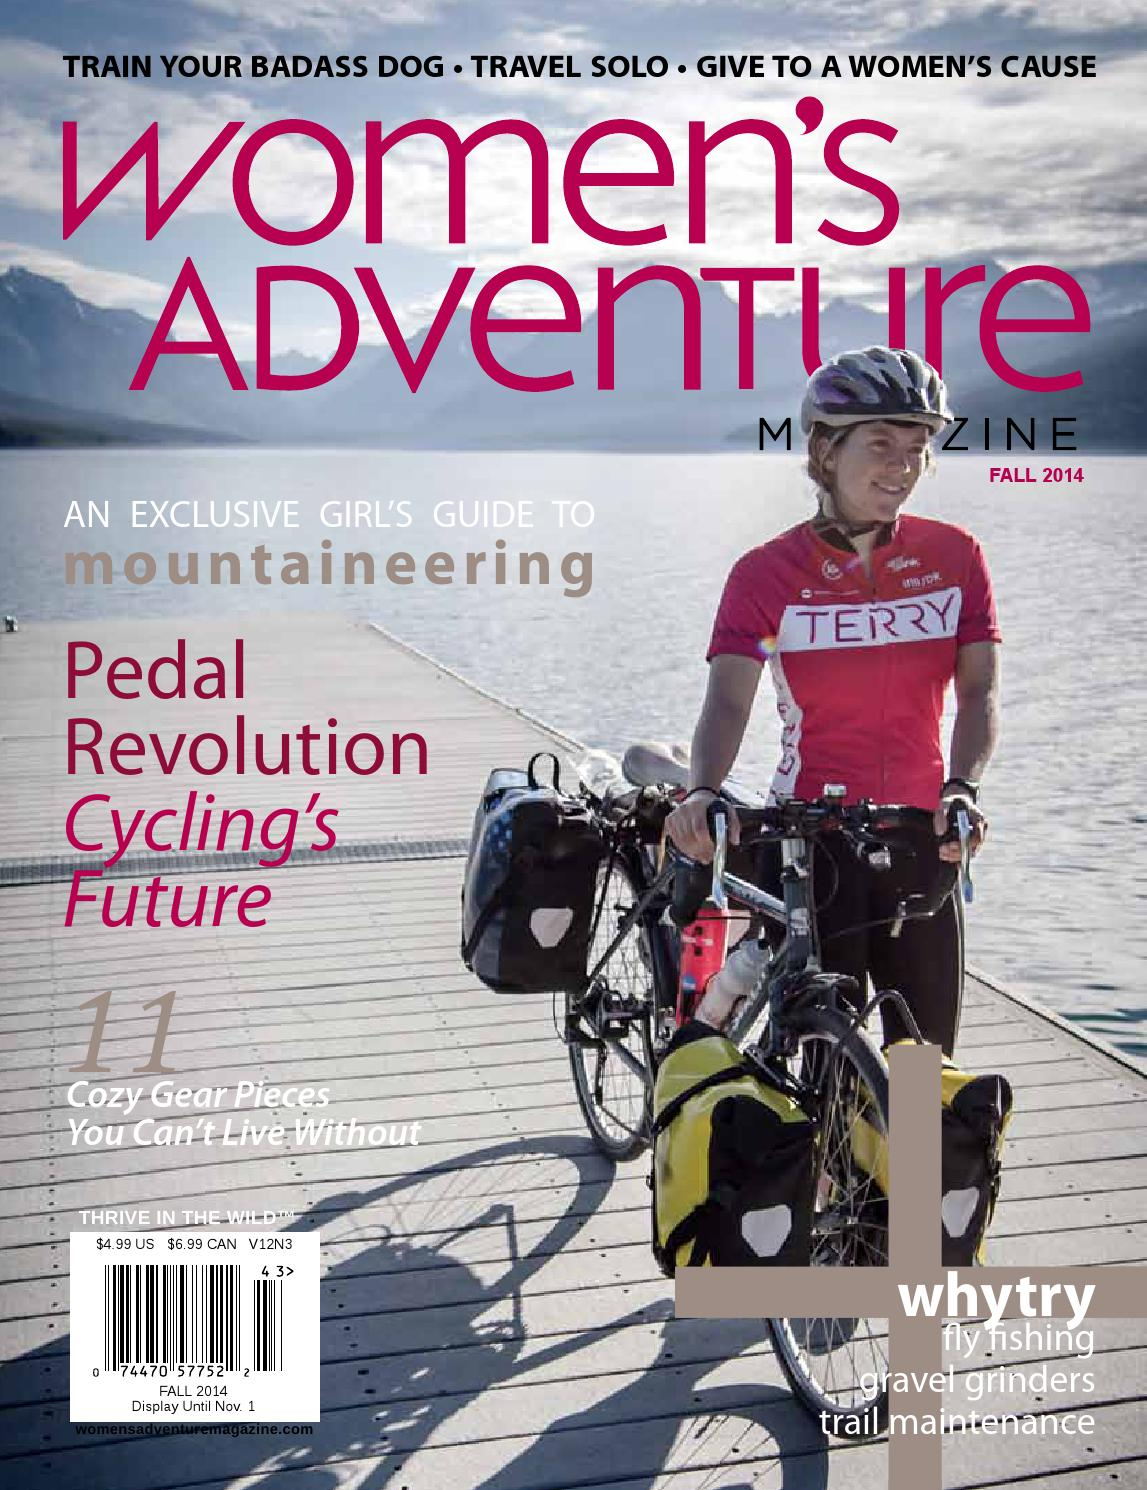 6b3788cdb Women s Adventure Fall 2014 by Women s Adventure Magazine - issuu